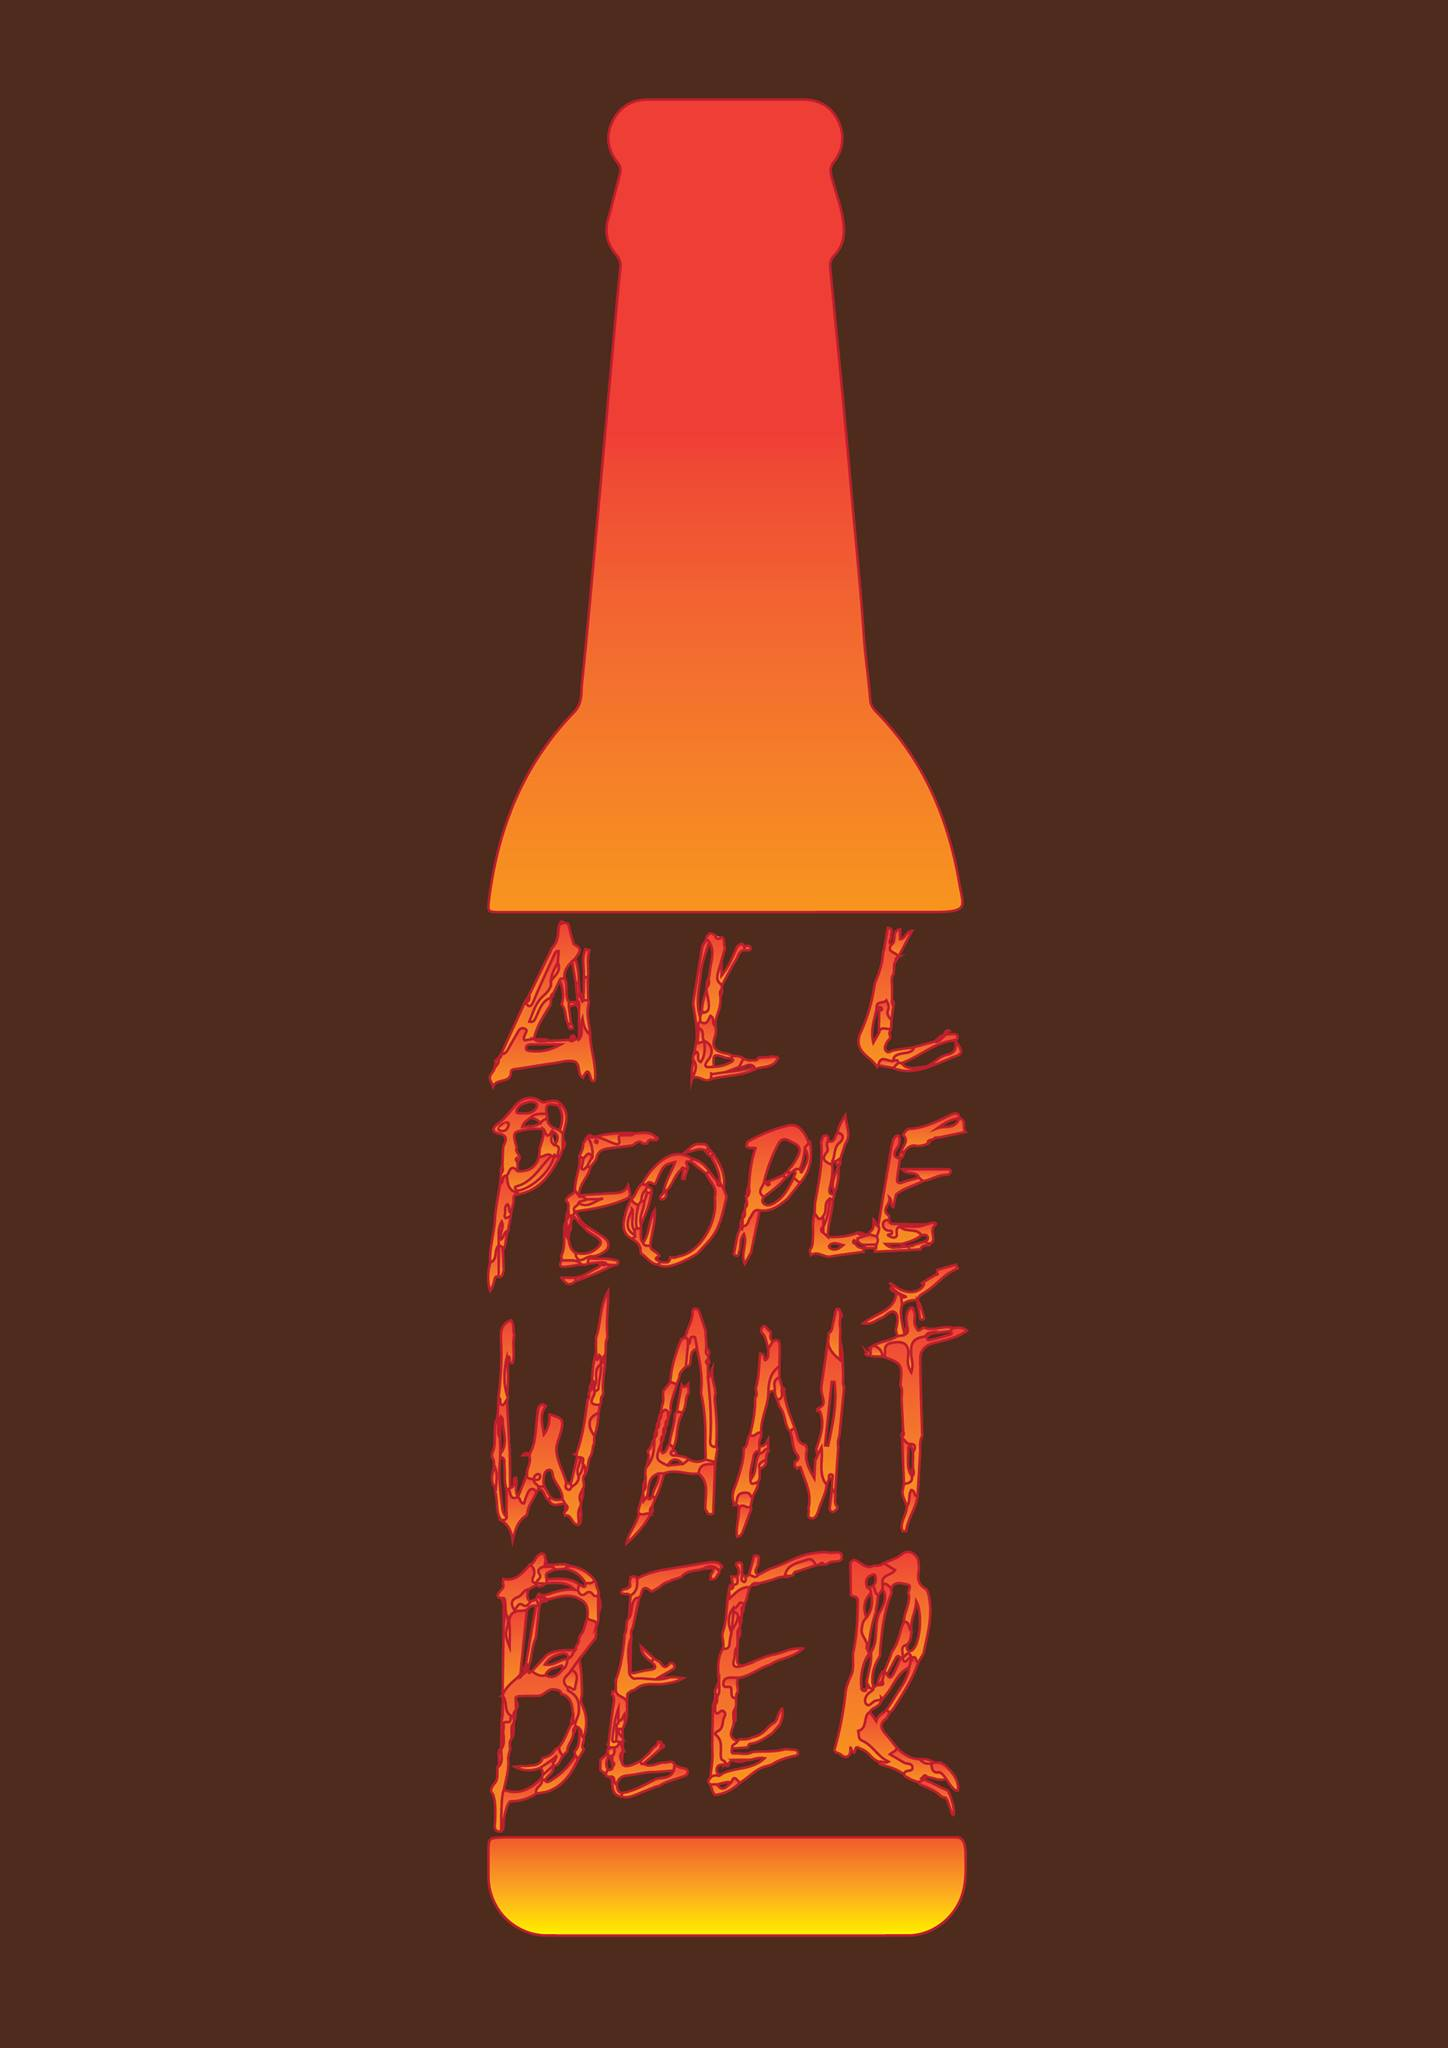 Molinfaing : All people want beer – Vernissage